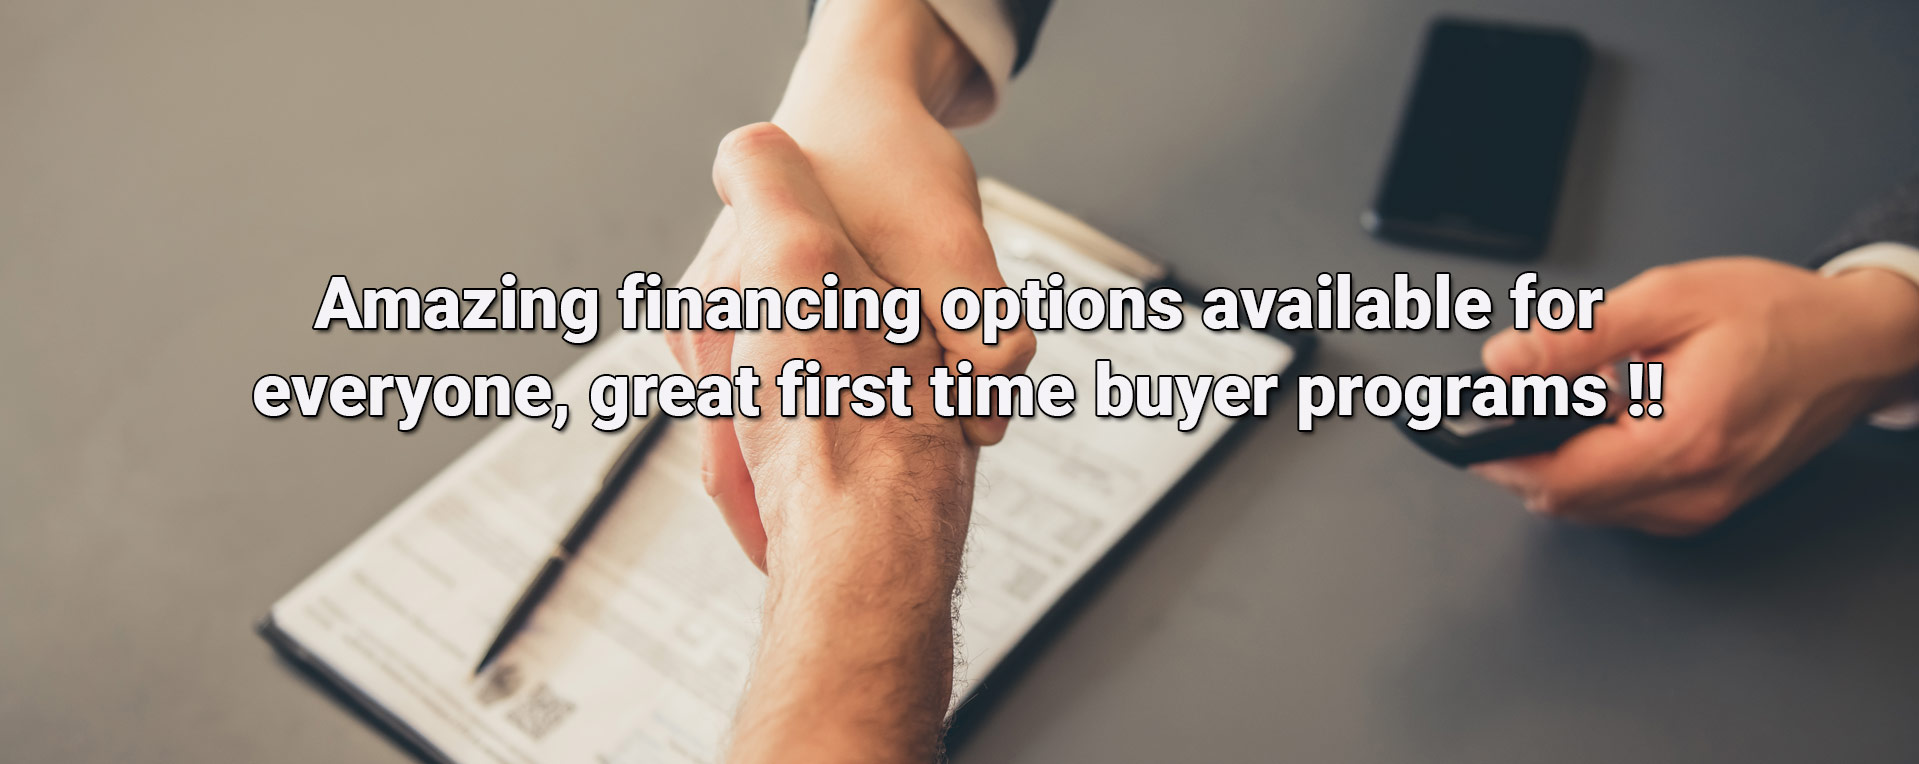 Amazing financing options available for everyone, great first time buyer programs !!